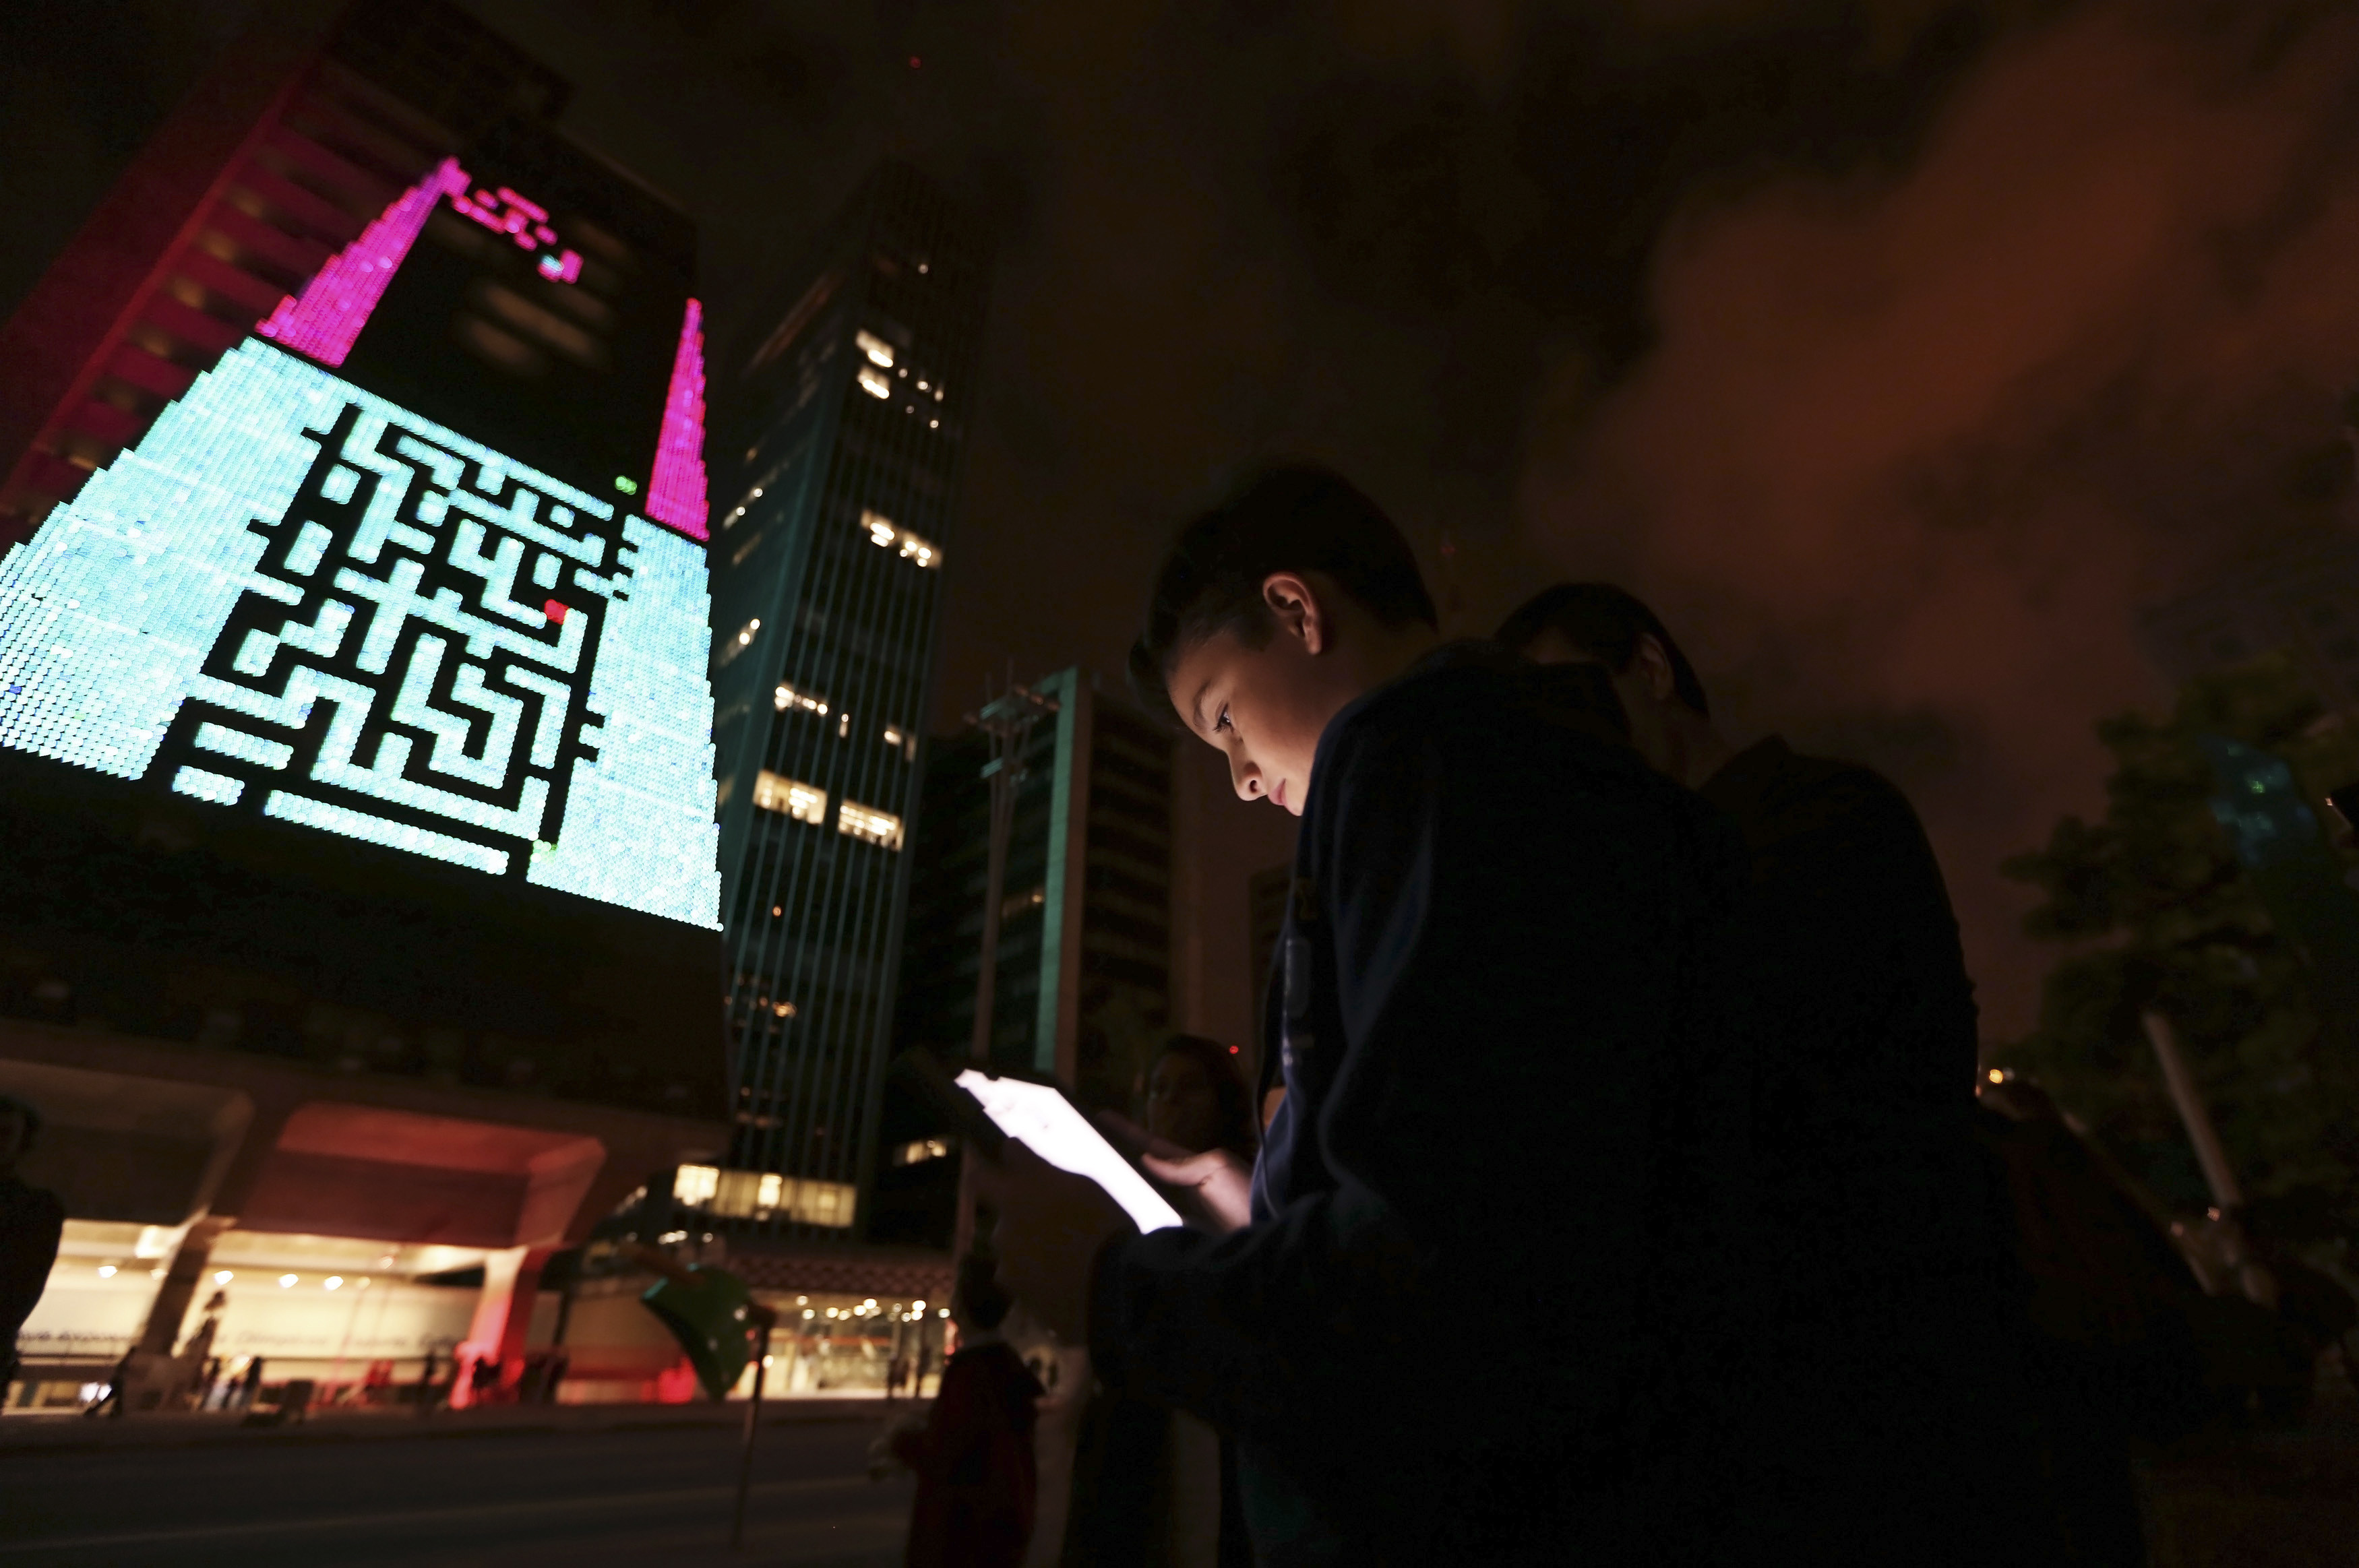 """A boy uses an iPad to play a video game, which is projected onto the surface of the Fiesp building, headquarters of the Industry Federation of Sao Paulo, during the """"Play!"""" exhibition in the financial center of Sao Paulo's Avenida Paulista March 27, 2013. The exhibition aims to explore the possibilities of integrating digital art in public space through new communication tools, according to the curator of the event. The games presented in the exhibition are from the 1970s and 80s.  REUTERS/Nacho Doce (BRAZIL - Tags: SCIENCE TECHNOLOGY SOCIETY TPX IMAGES OF THE DAY) - GM1E93S0YJJ01"""